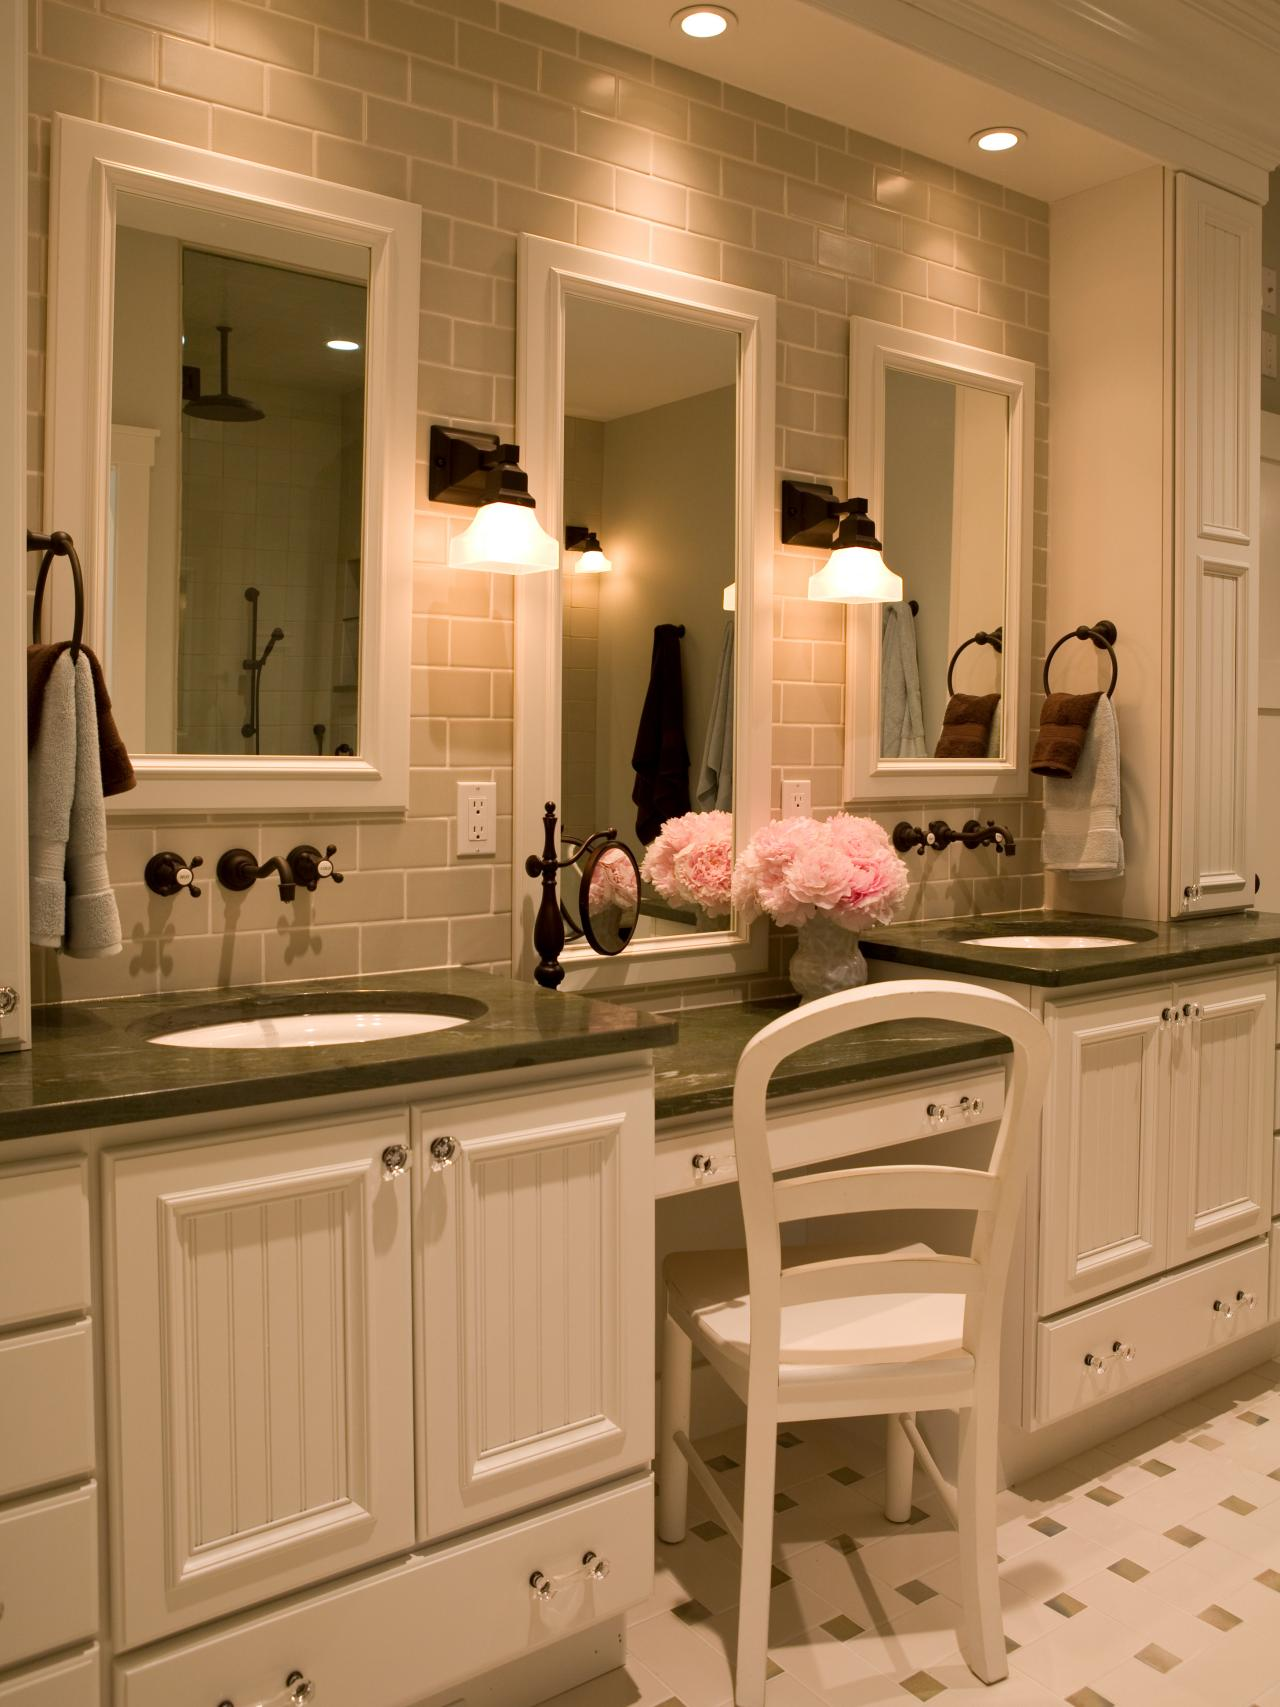 Makeup vanity dressing table bathroom ideas designs for Bathroom ideas vanity